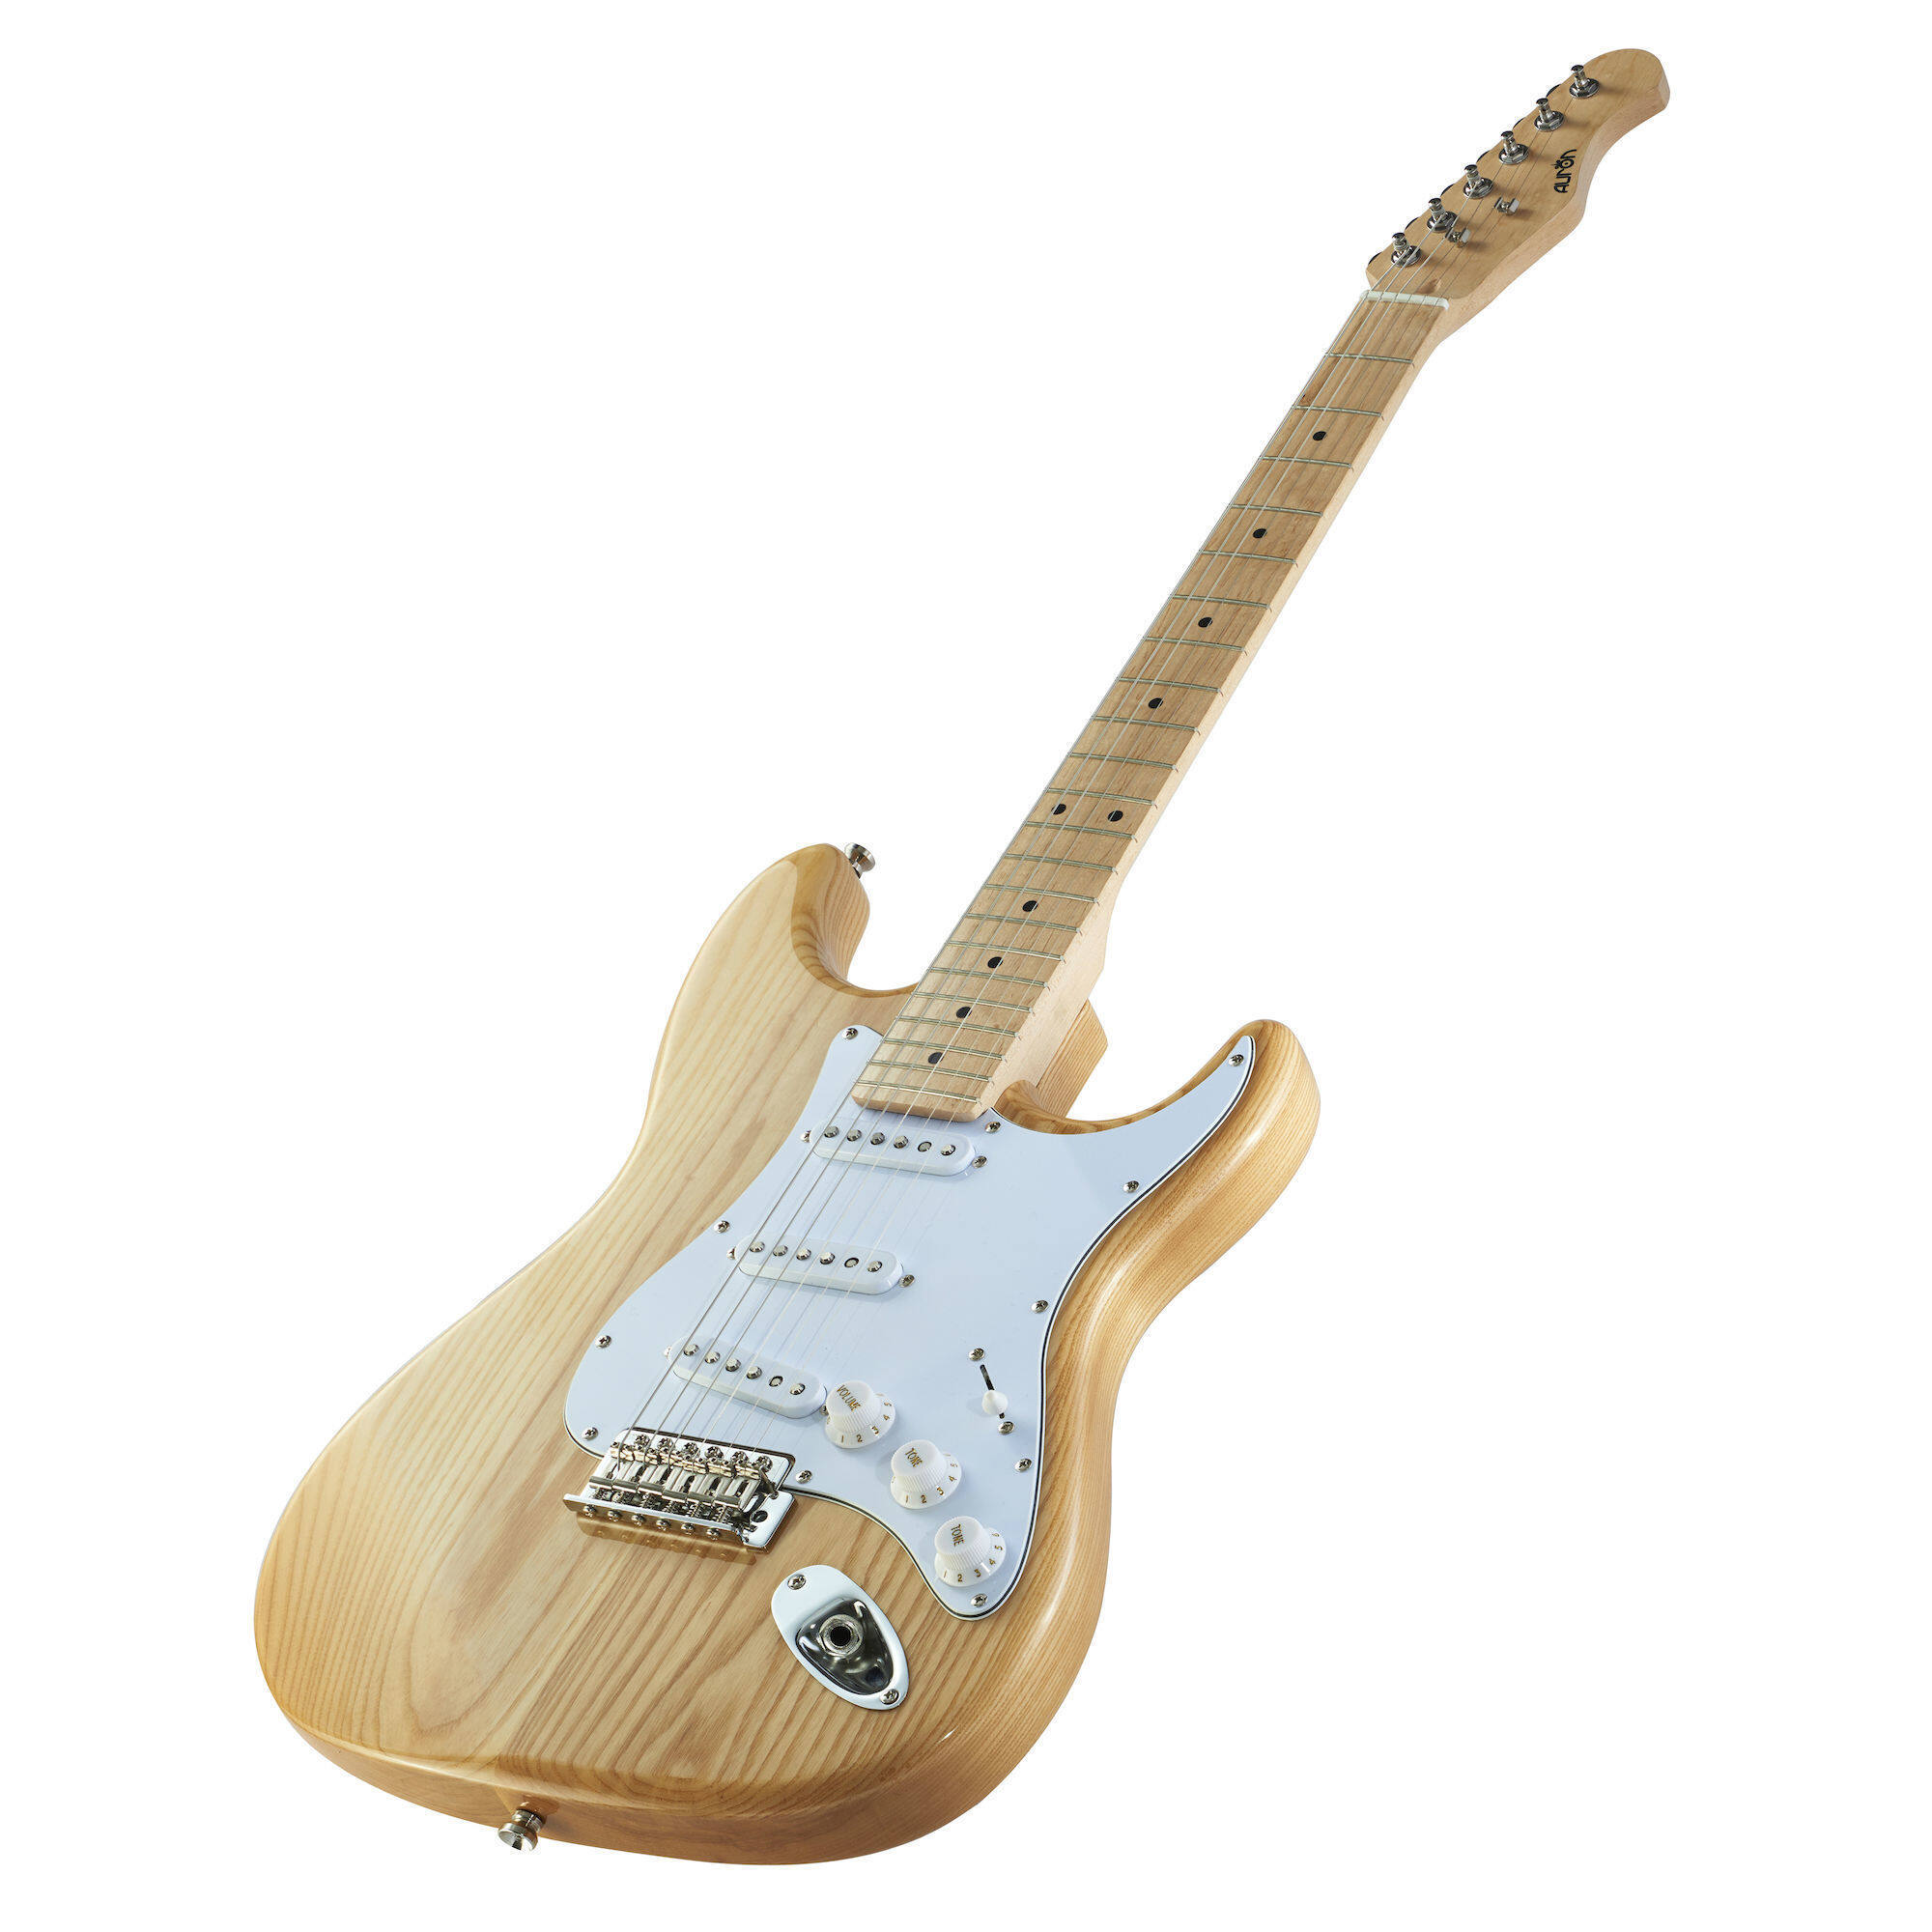 Unusual Bass Pickup Configurations Tiny 5 Way Import Switch Wiring Regular Installing A Remote Start Bulldog Car Alarms Old Ibanez Hsh BrightOne Humbucker One Volume Auron Slim Strat Style Electric Guitar   Guitar Bag (Natural Wood ..